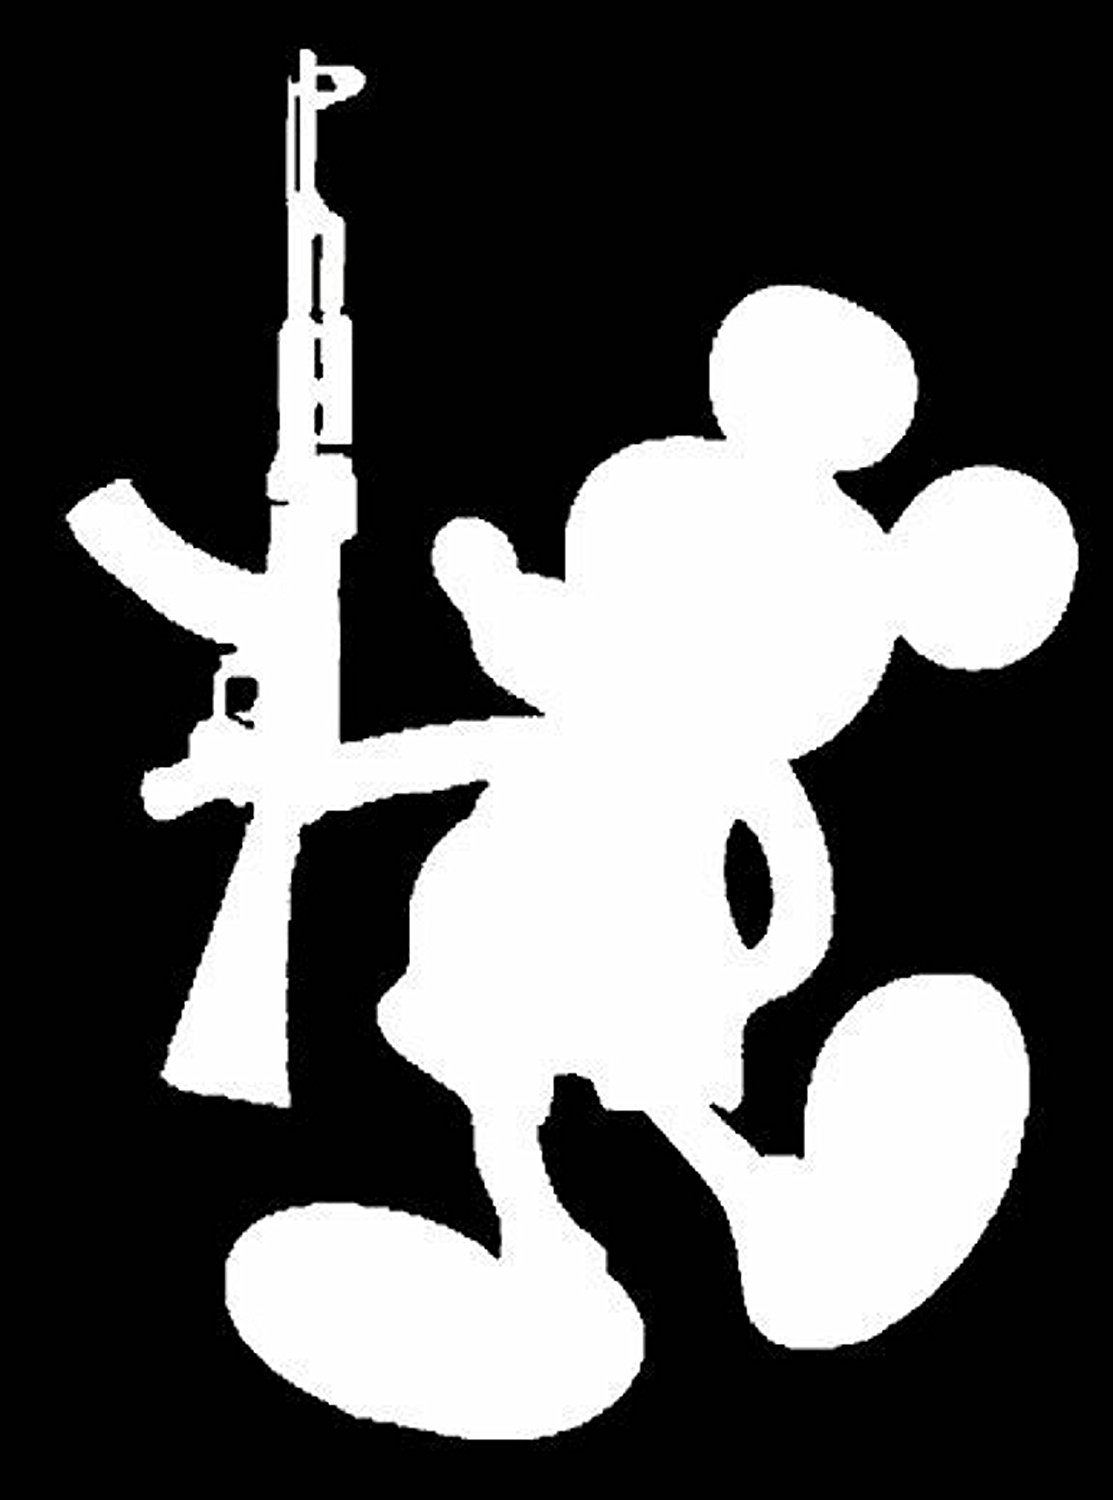 Mickey mouse with ak 47 gun vinyl sticker decal bumper window funny humor stick family